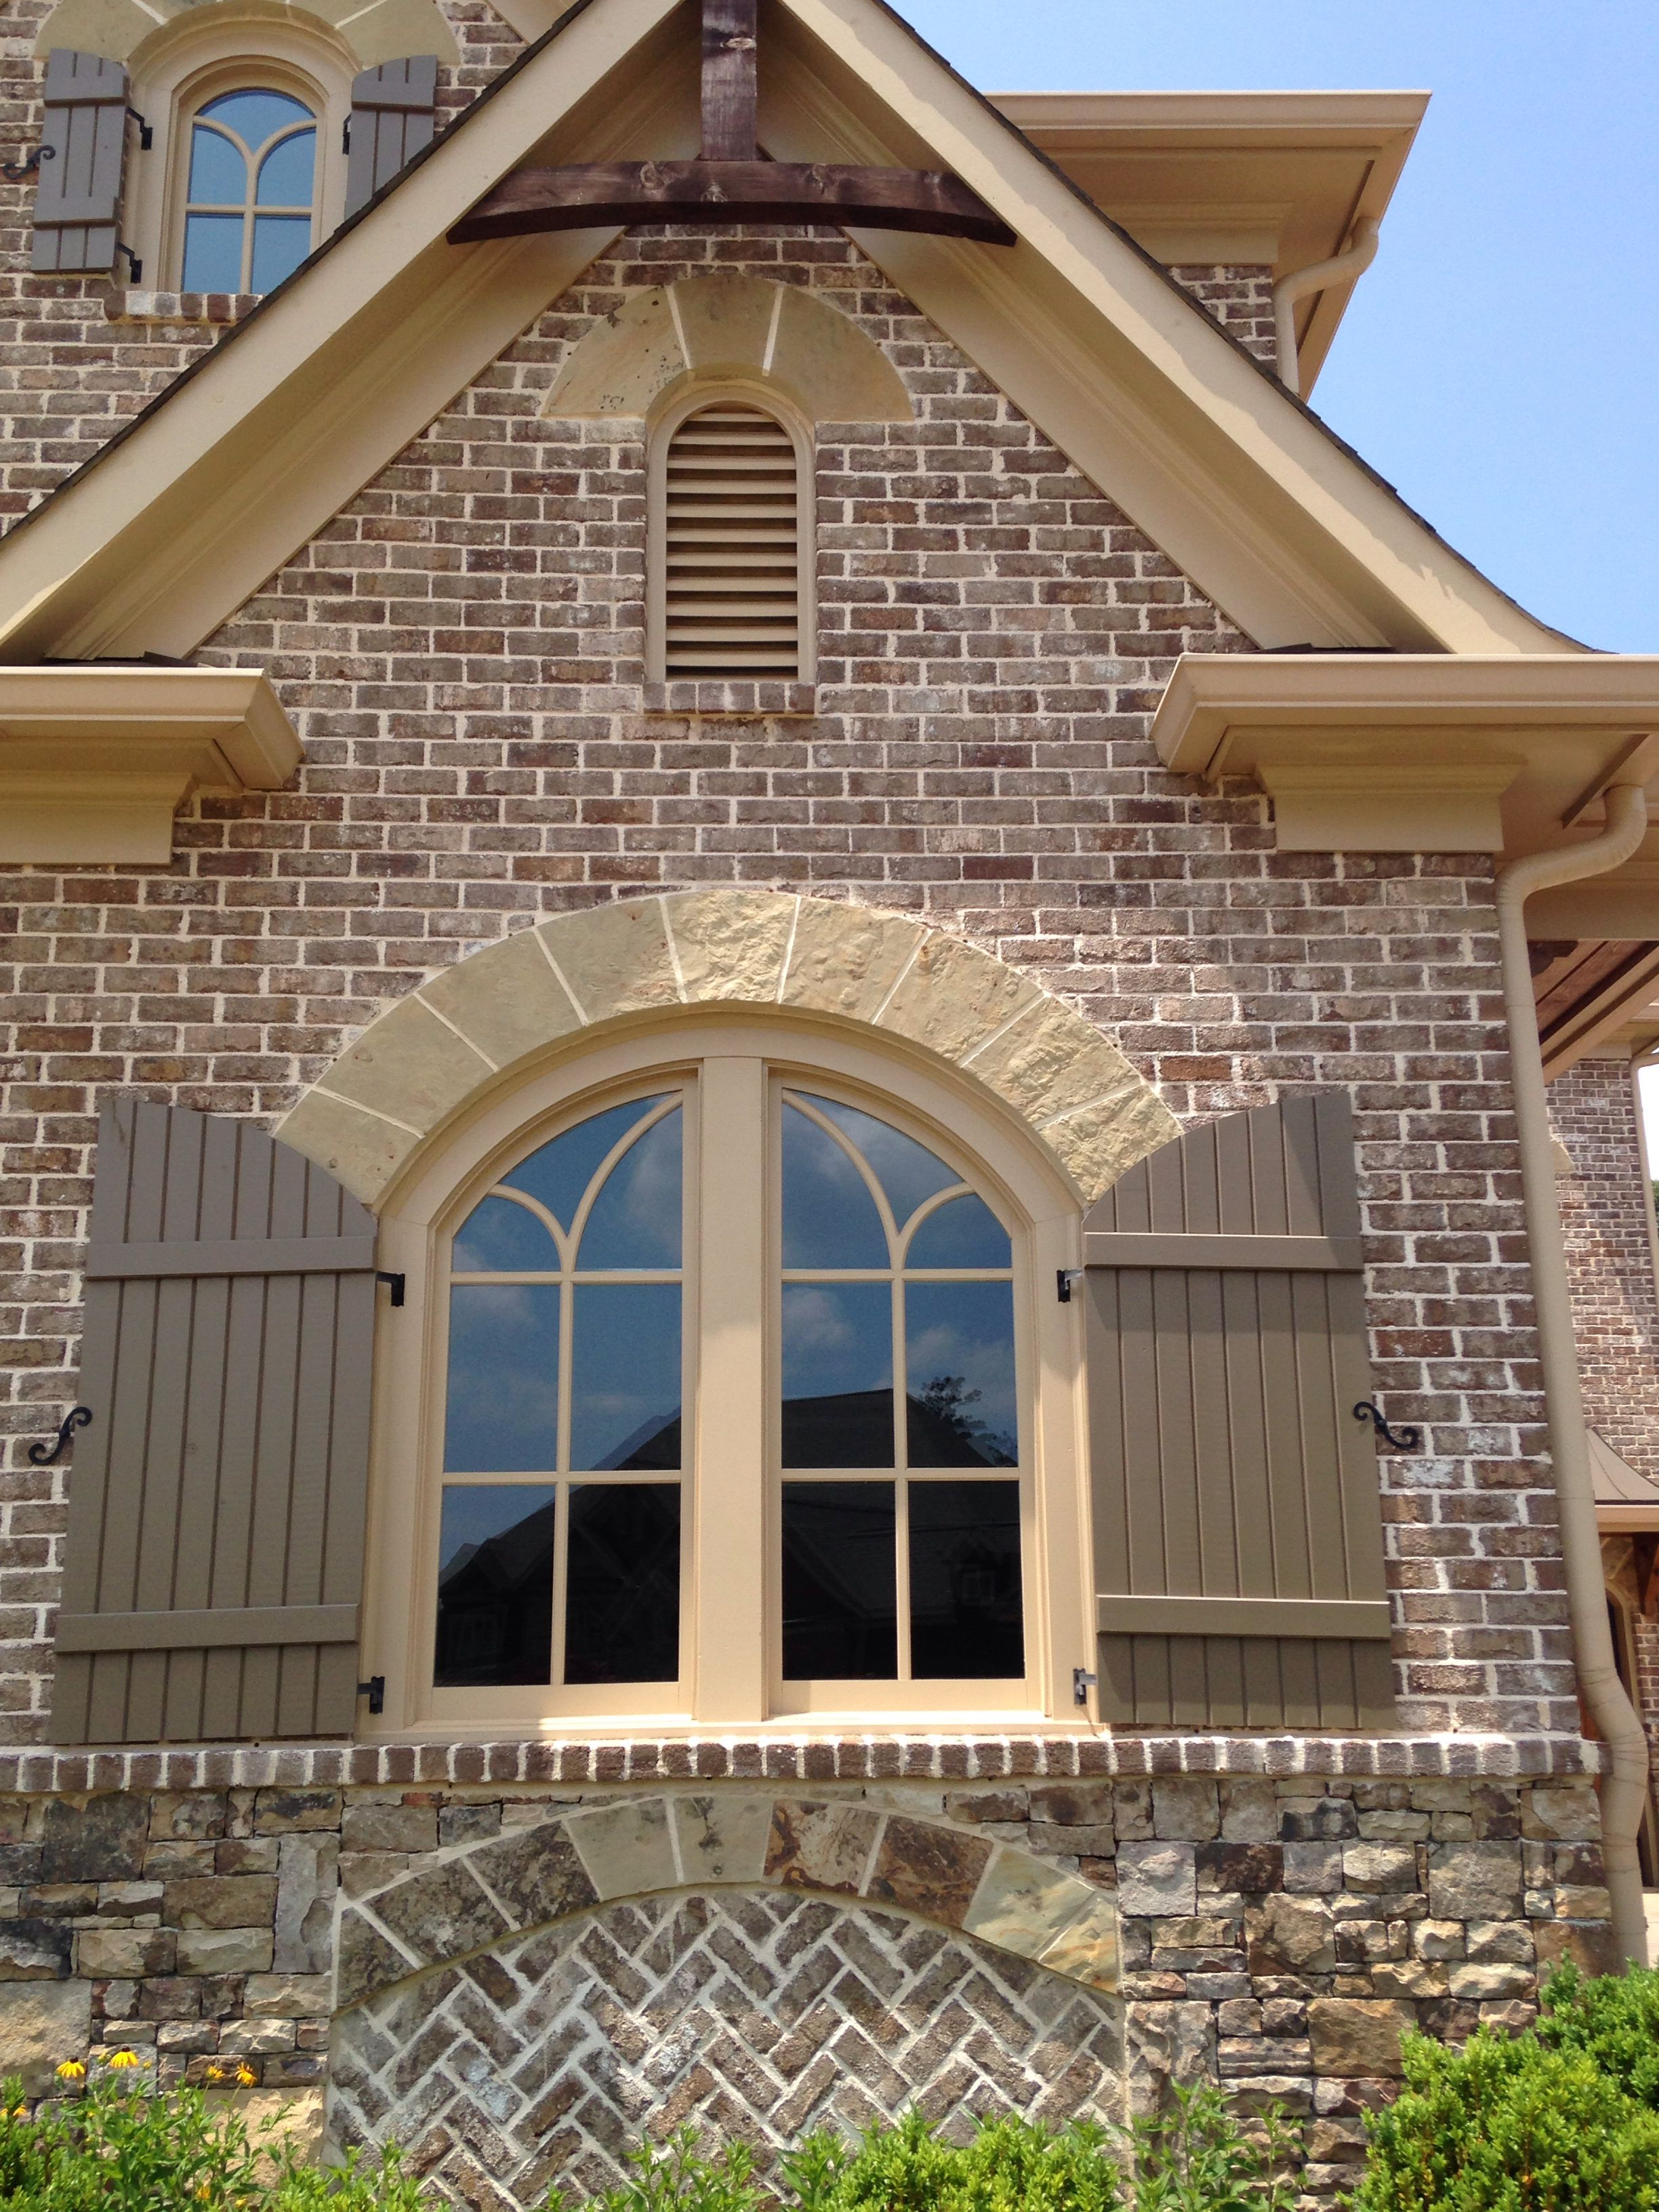 Brick cypress moss mortar ivory 2014 hot bricks - Exterior house paint colors 2014 ...